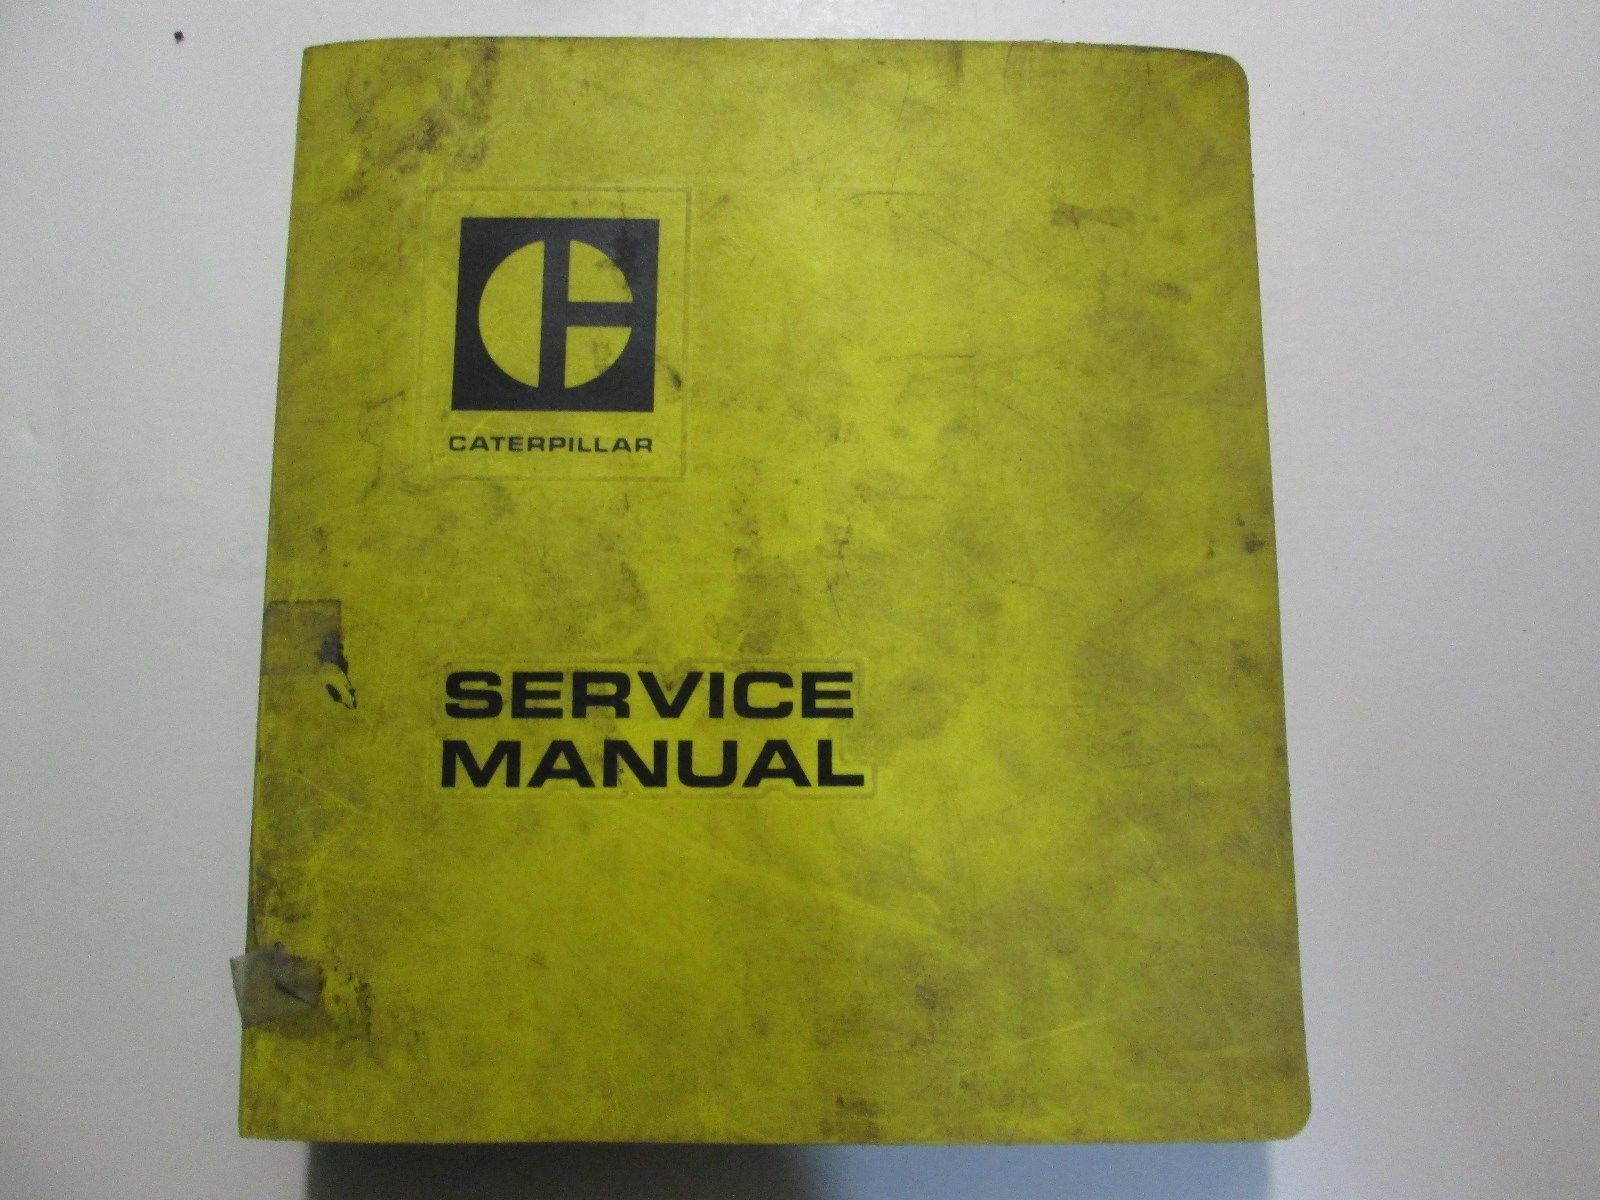 Caterpillar T60C Thru T120C Lift Tricks Service Manual USED OEM CATERPILLAR